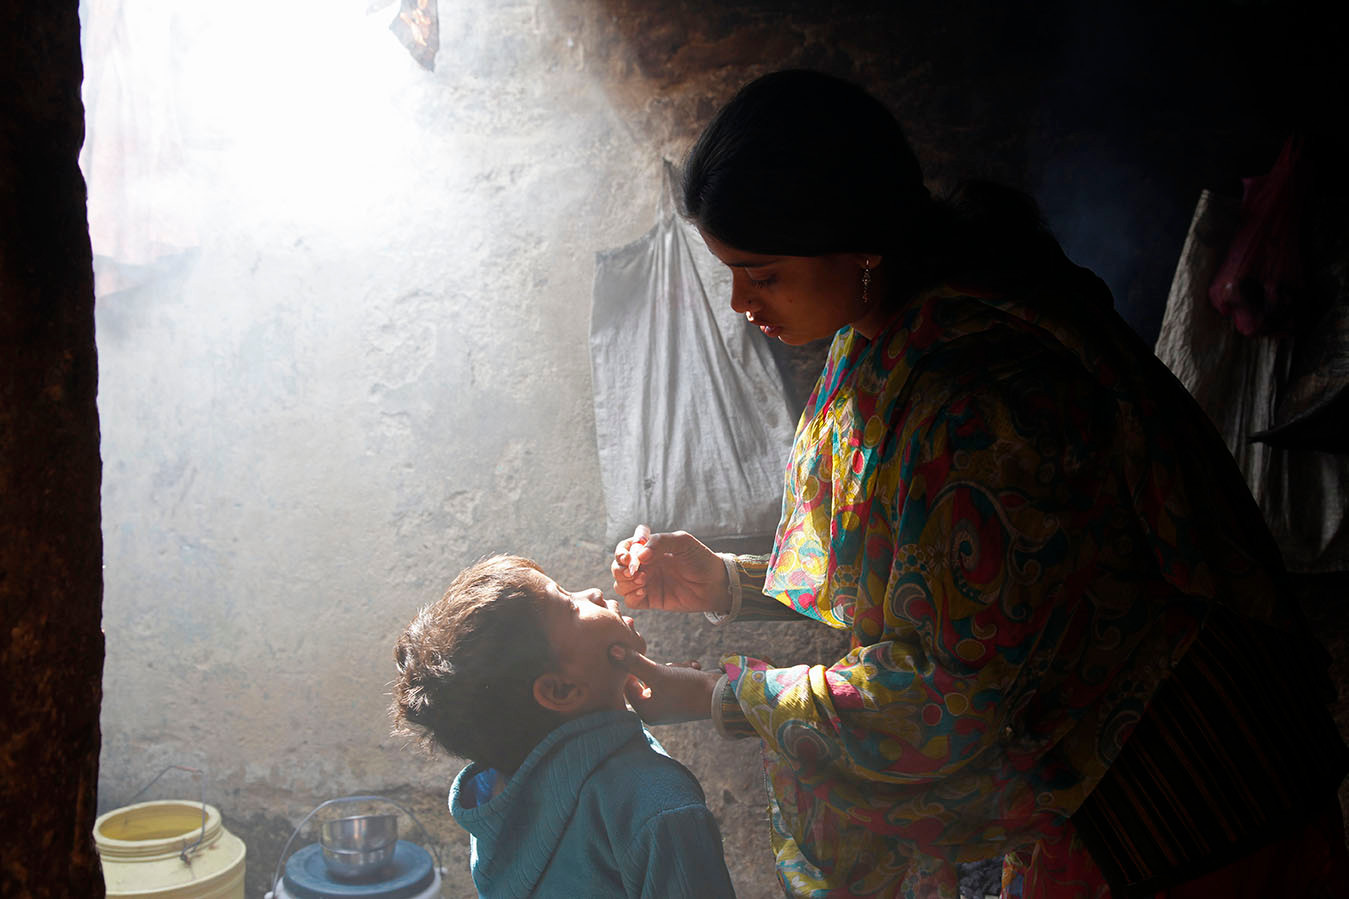 House-to-house polio vaccination team member gives a child polio vaccine drops in a home in the Kamla Nehru Nagar slum in Patna, Bihar, India, 2010.